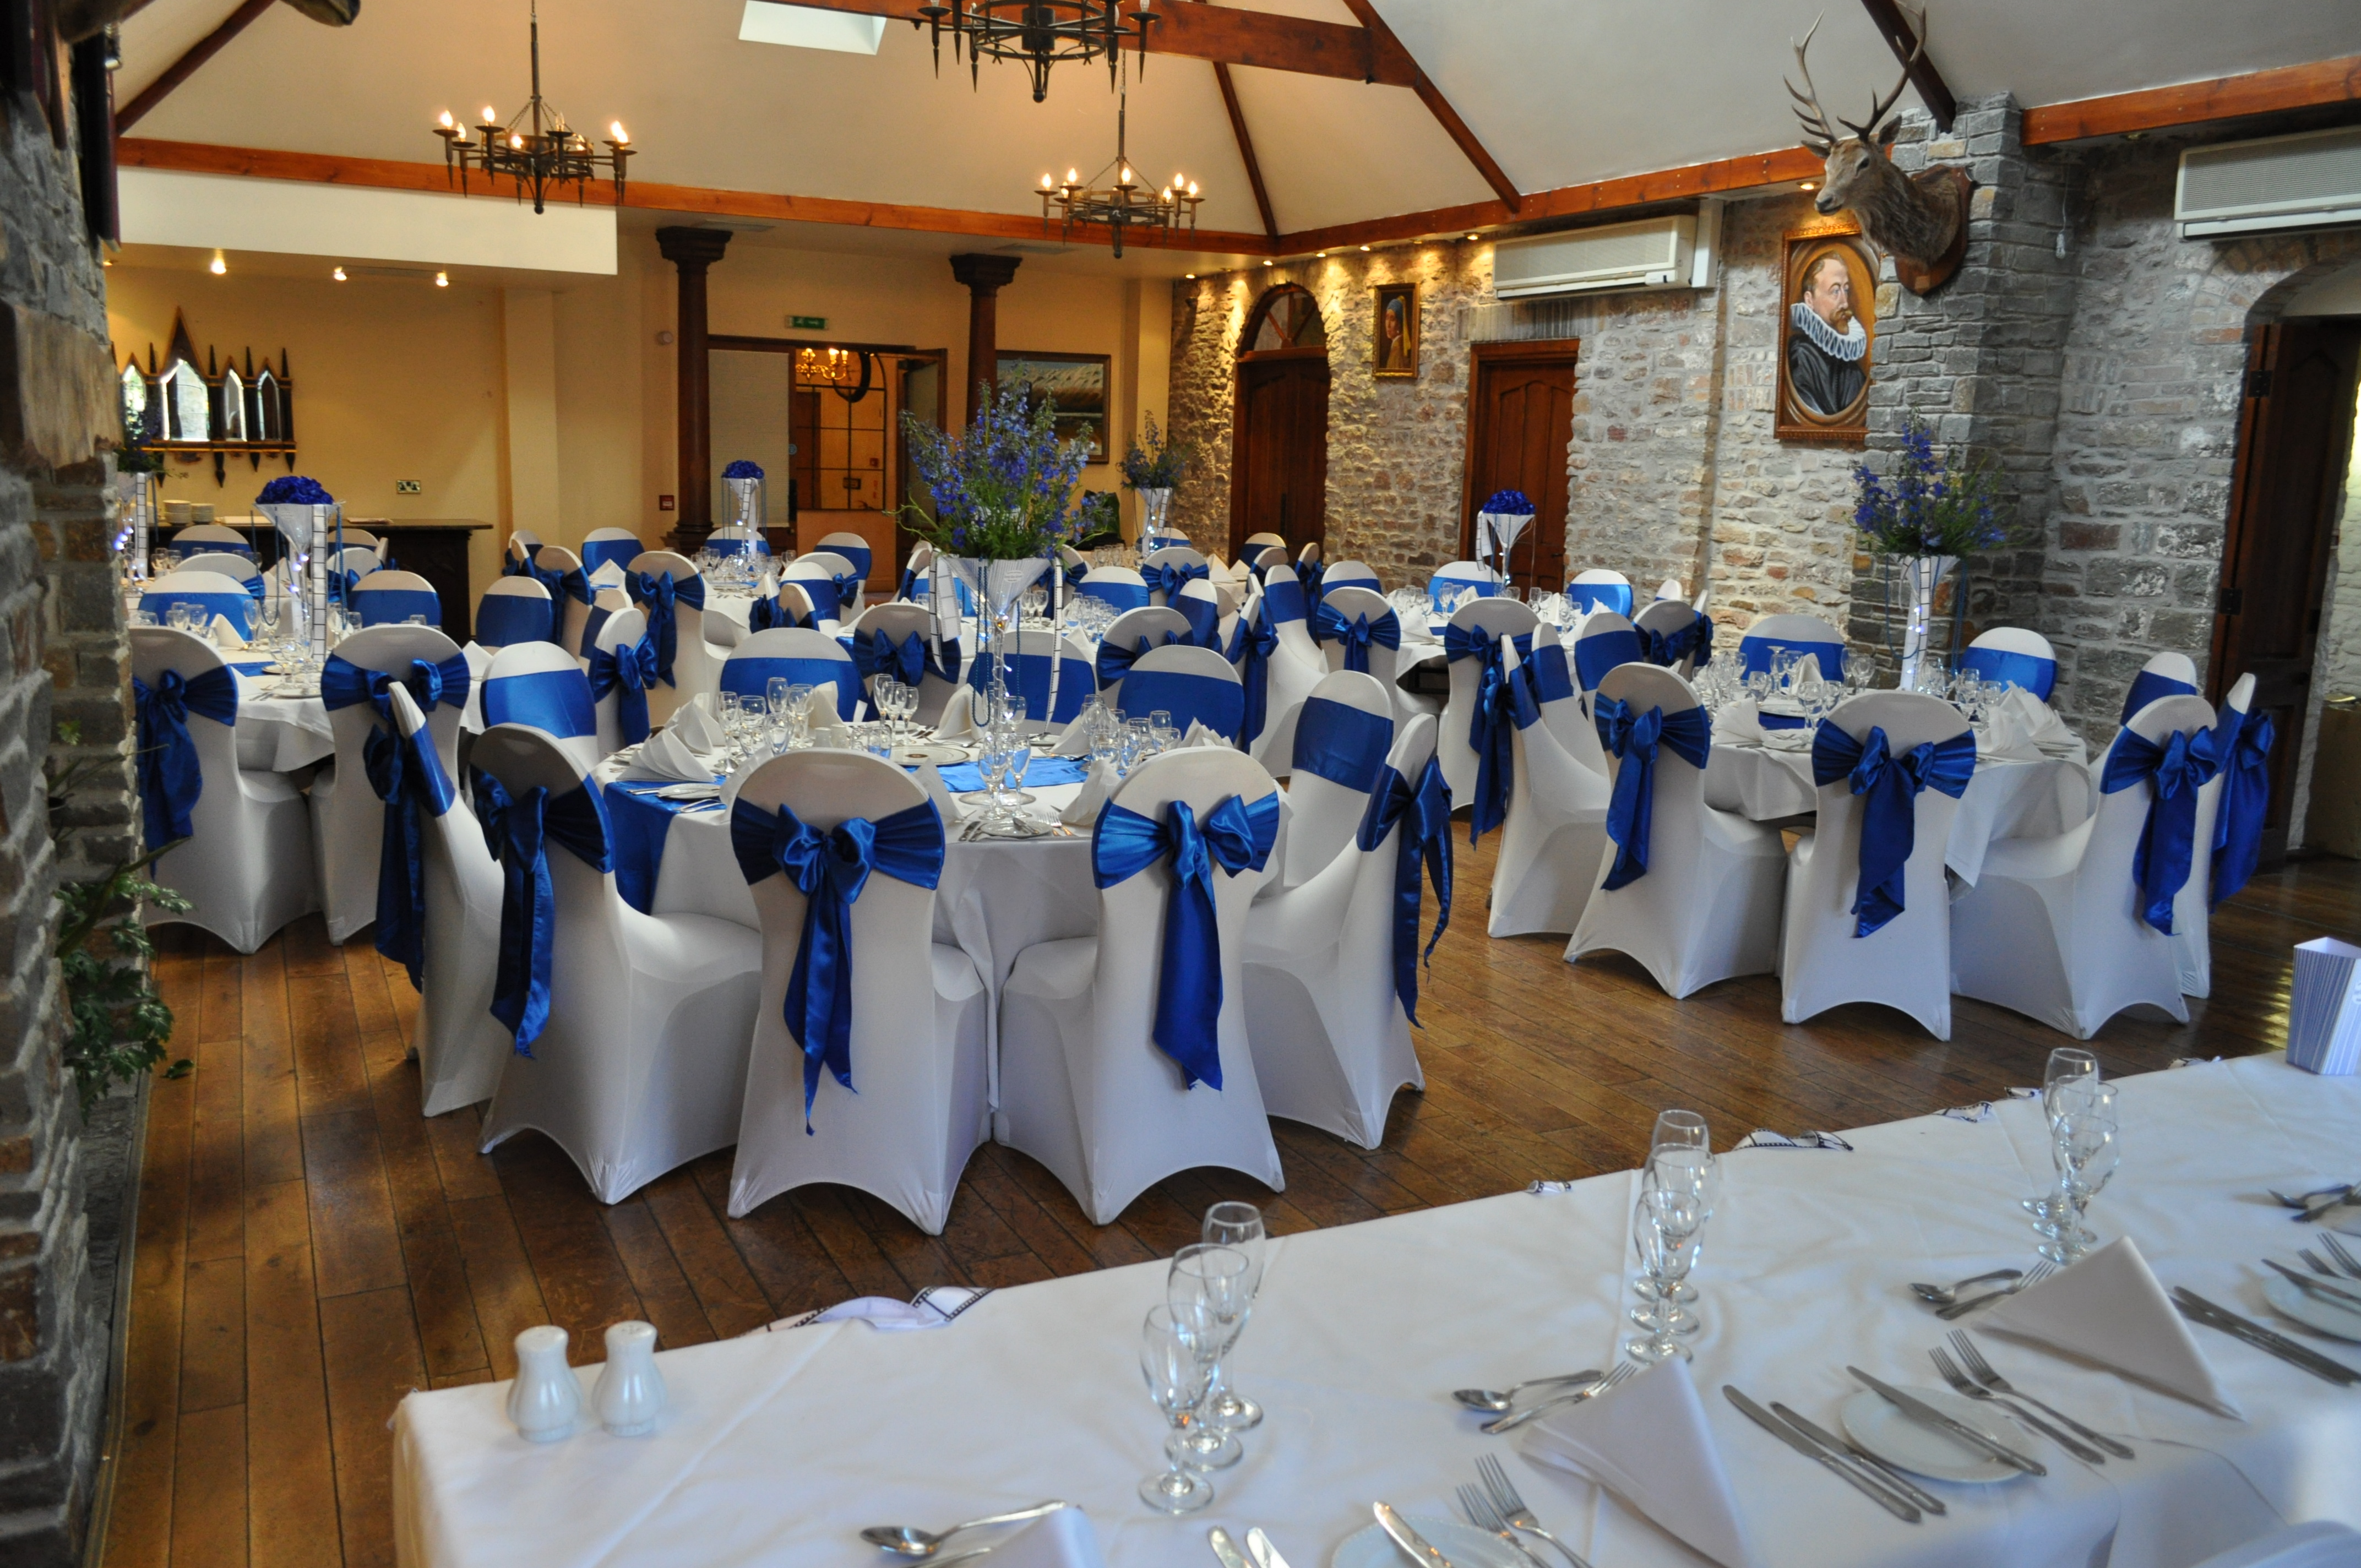 Check out our Wedding Packages - on offer for April and May 2014!